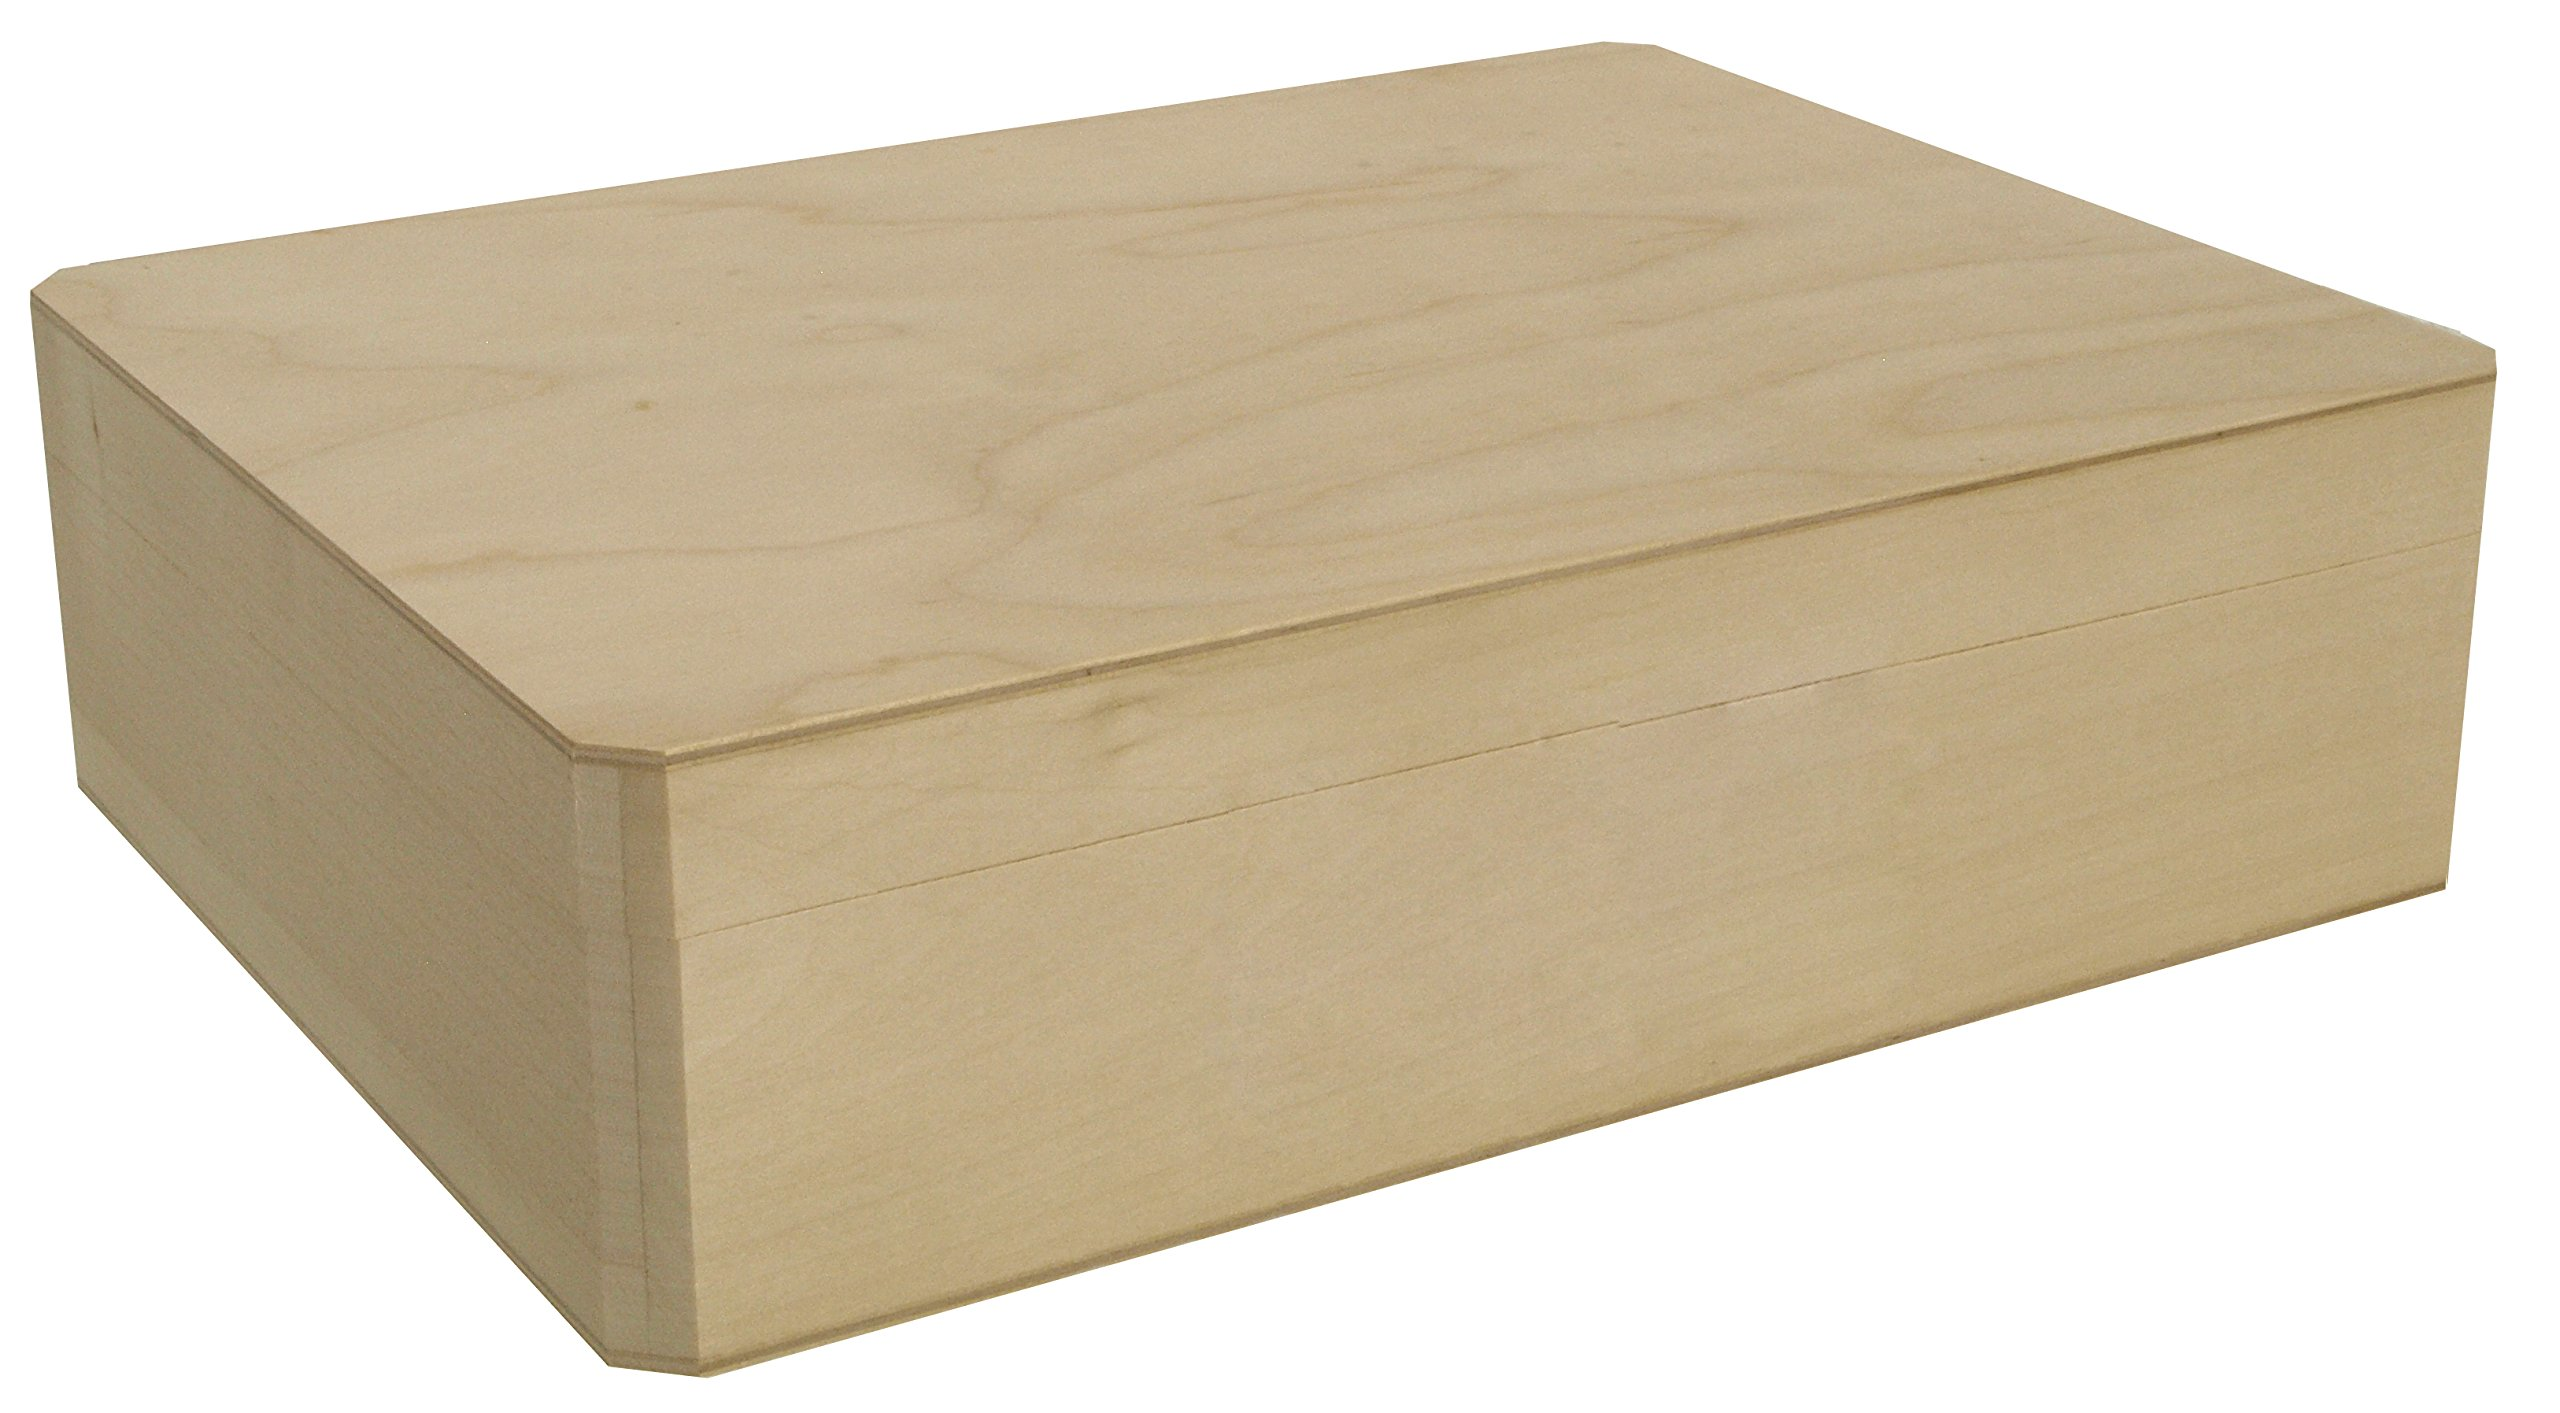 Walnut Hollow Unfinished Wood Cornice Box with Hinged Lid for Arts, Crafts, Hobbies and Home Storage